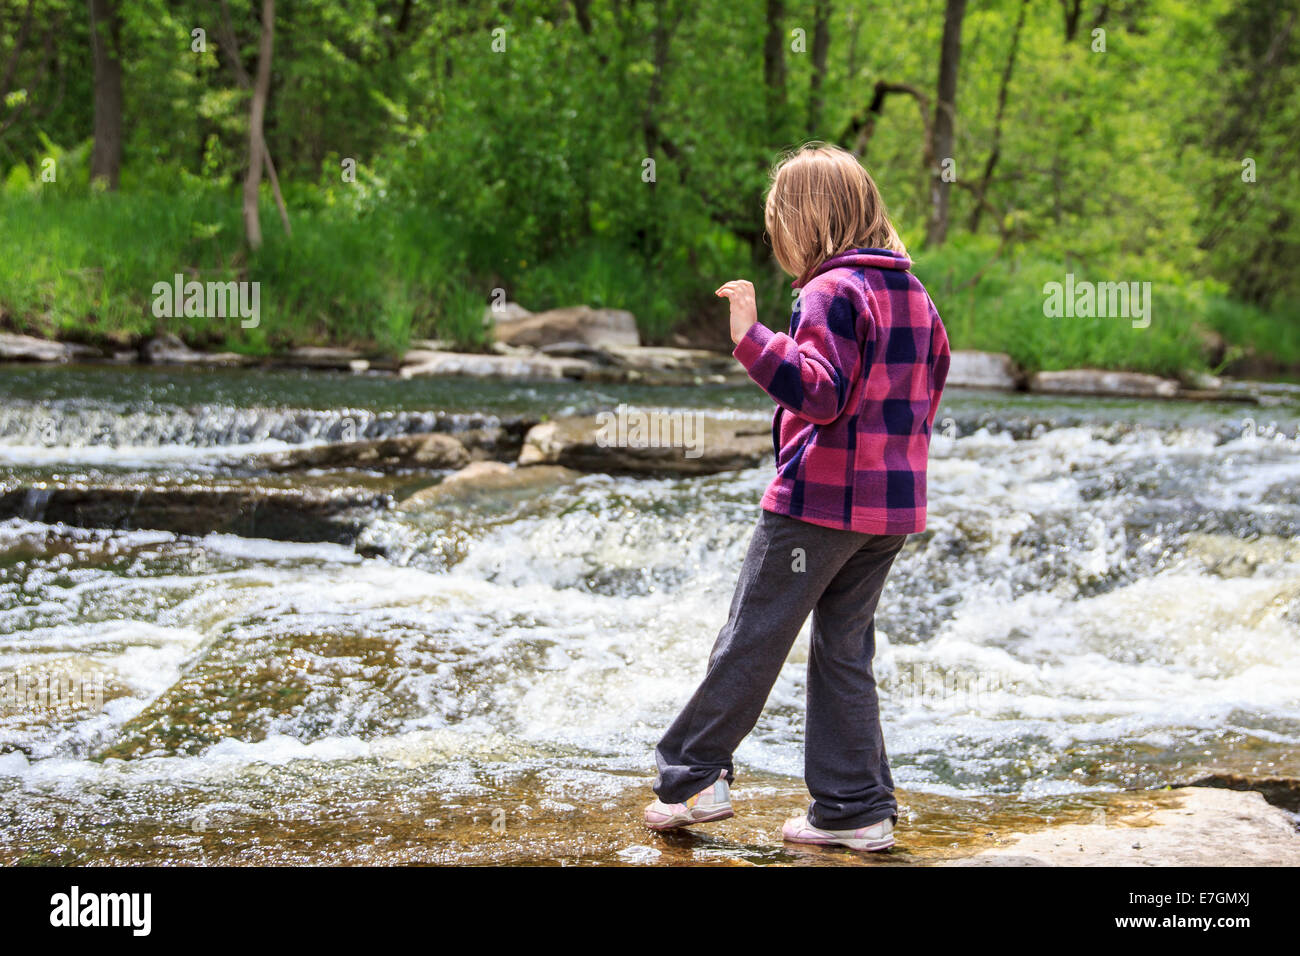 Young girl playing by a stream in the woods.  Tentatively dipping her toe in the water. - Stock Image